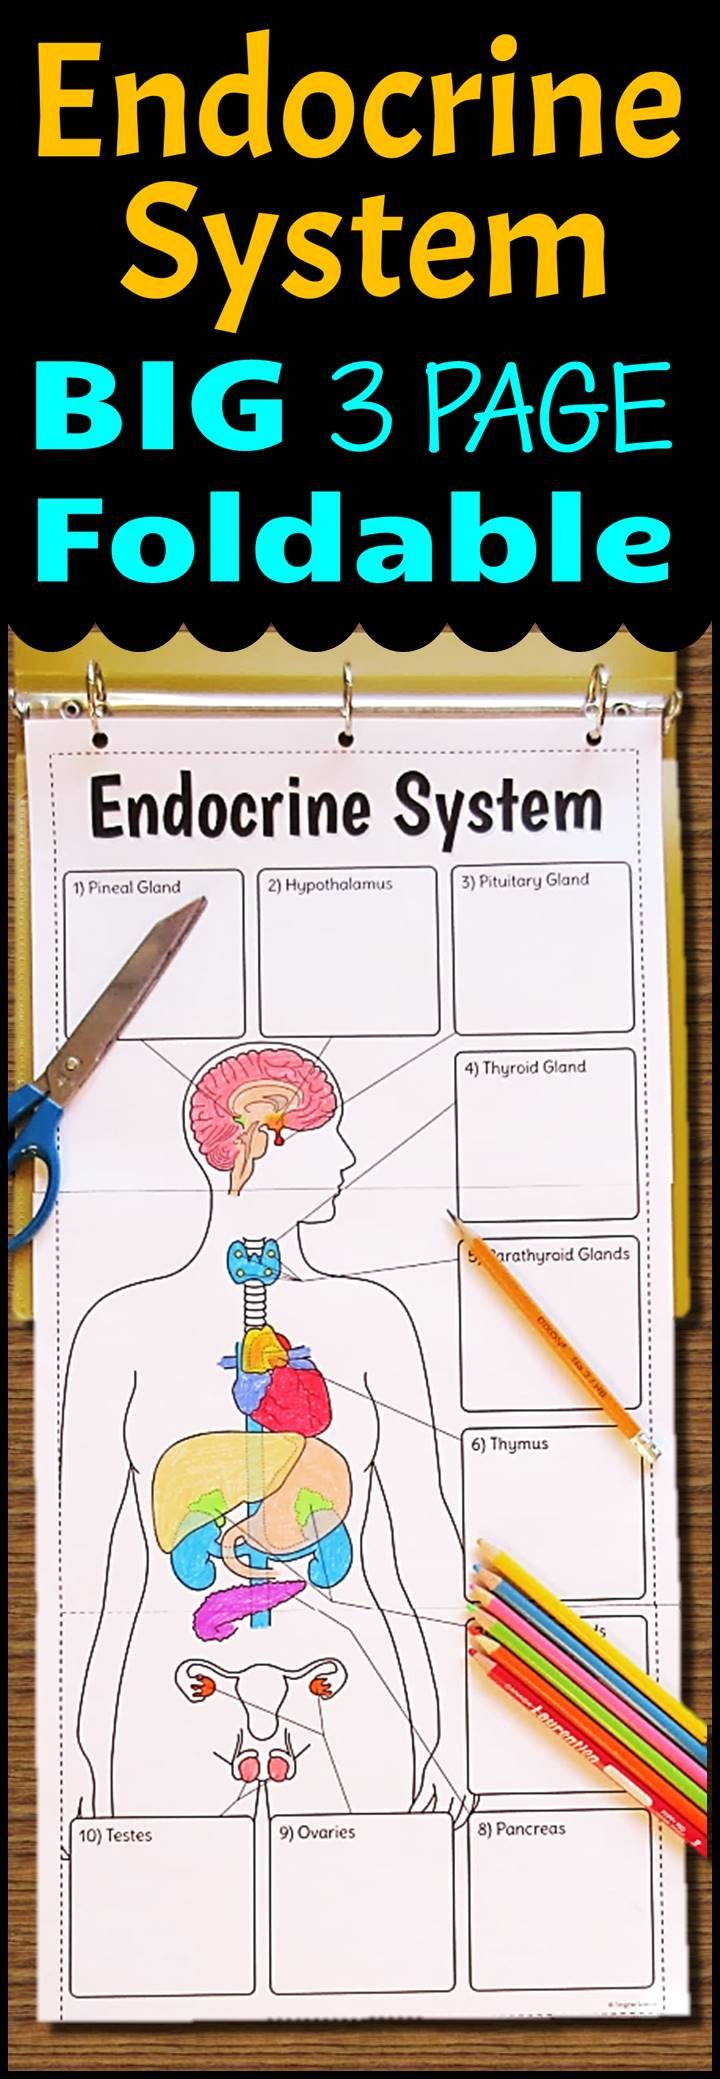 Endocrine System Study Guide With Answers Q&A | NRSNG